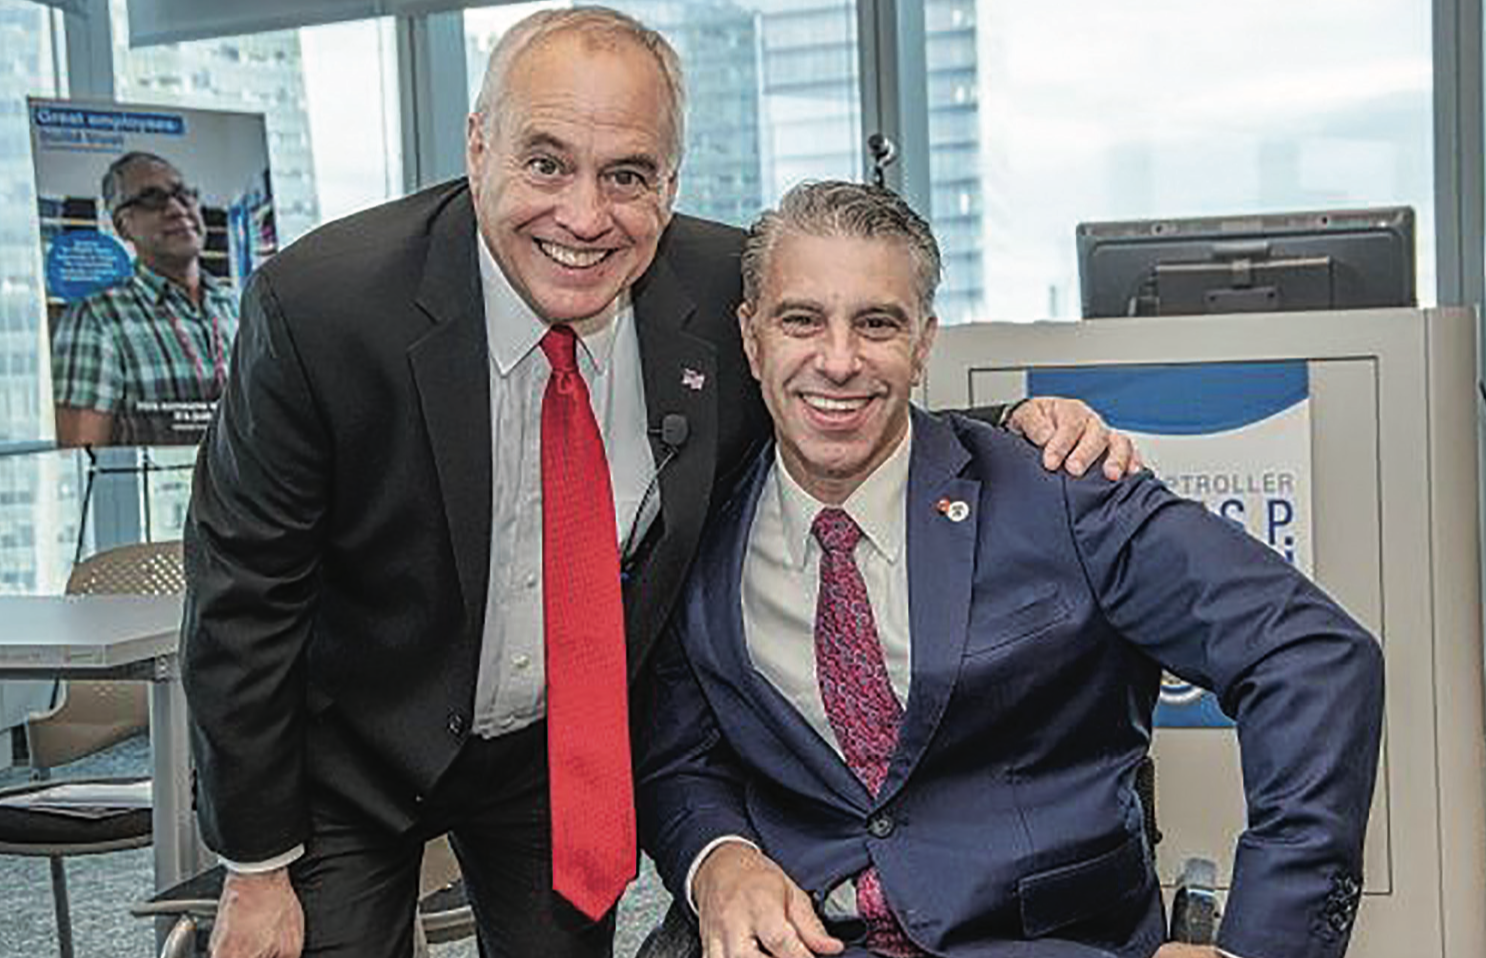 New York state Comptroller Thomas DiNapoli, left, with New York City Mayor's Office for People with Disabilities Commissioner Victor Calise at employment event